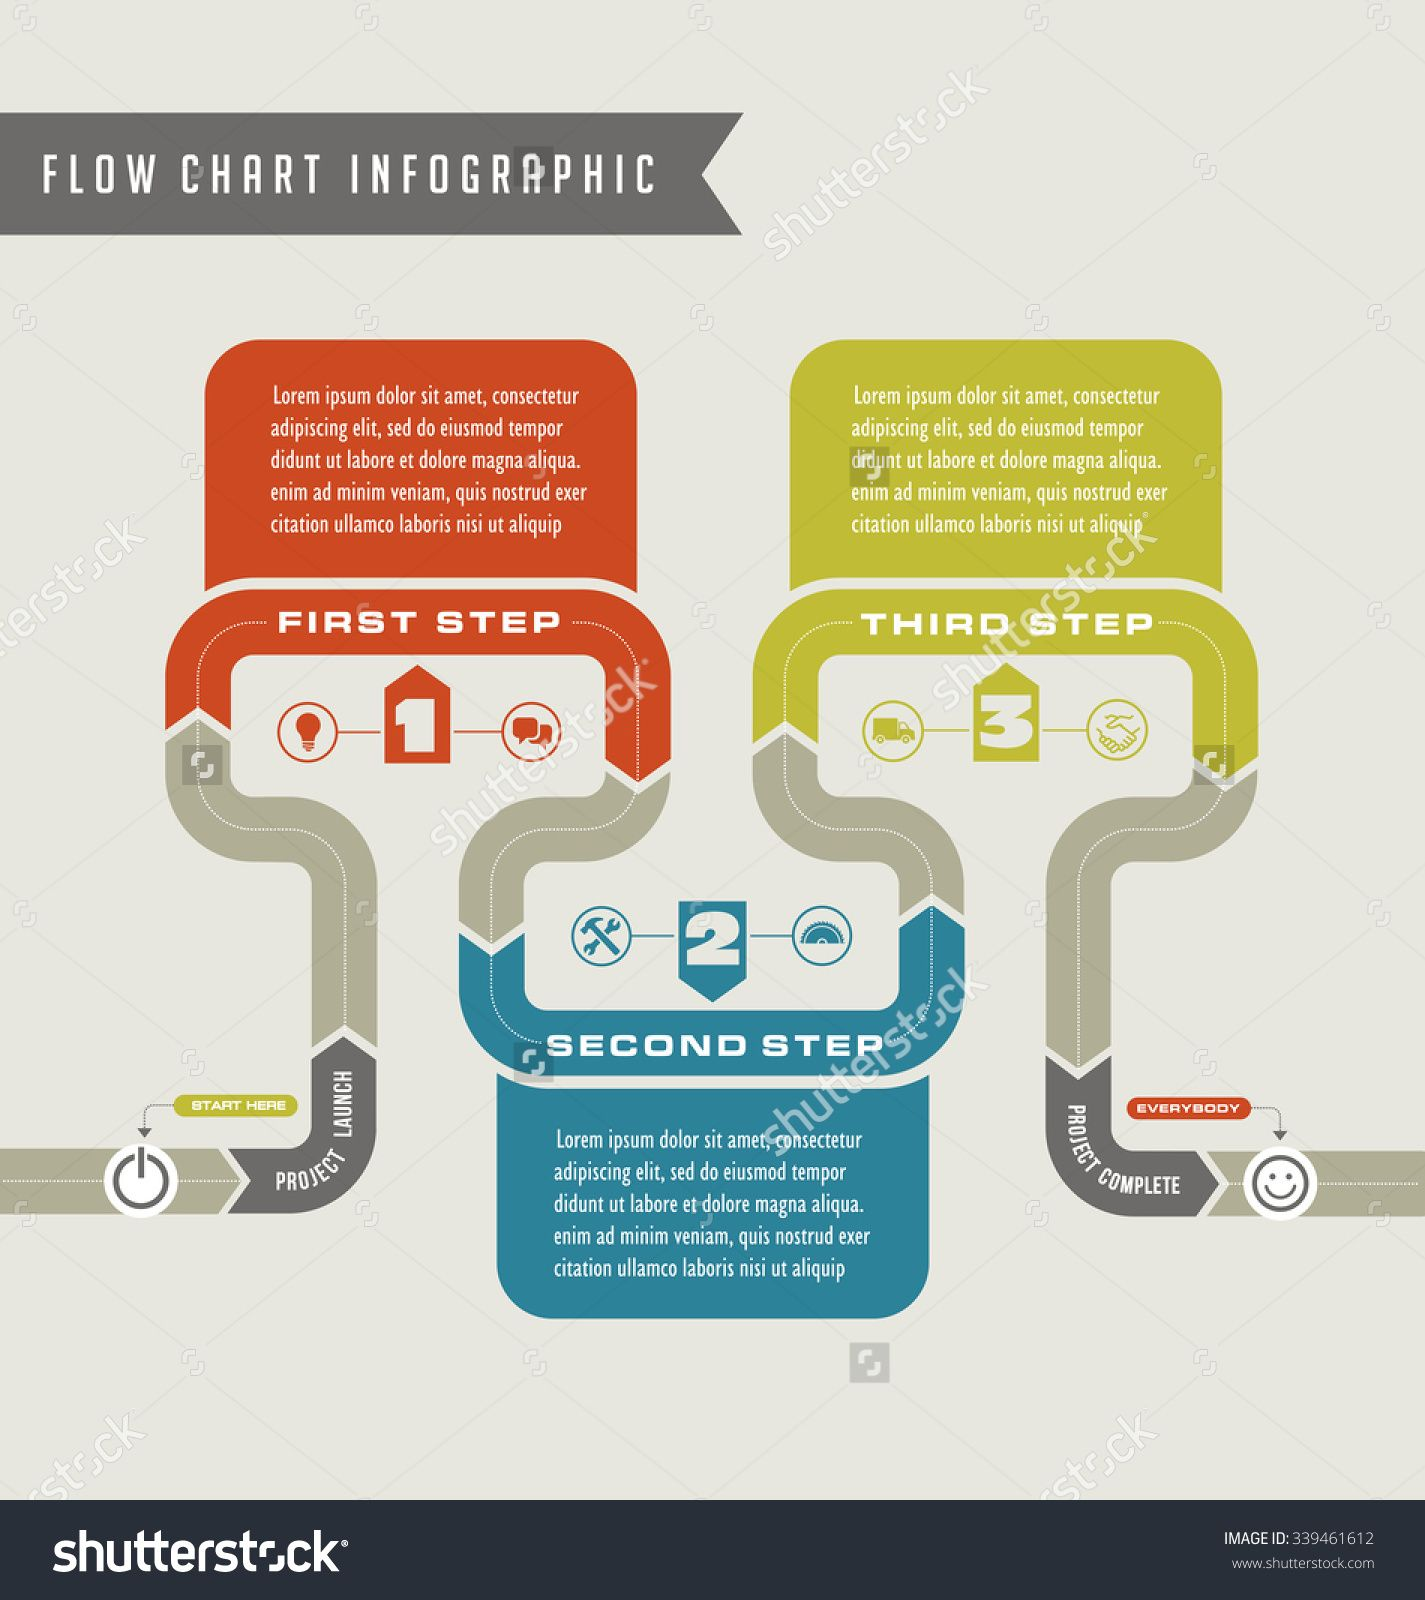 Image result for infographic flow infographics pinterest vector flow chart template infographic buy this stock vector on shutterstock find other images ccuart Images